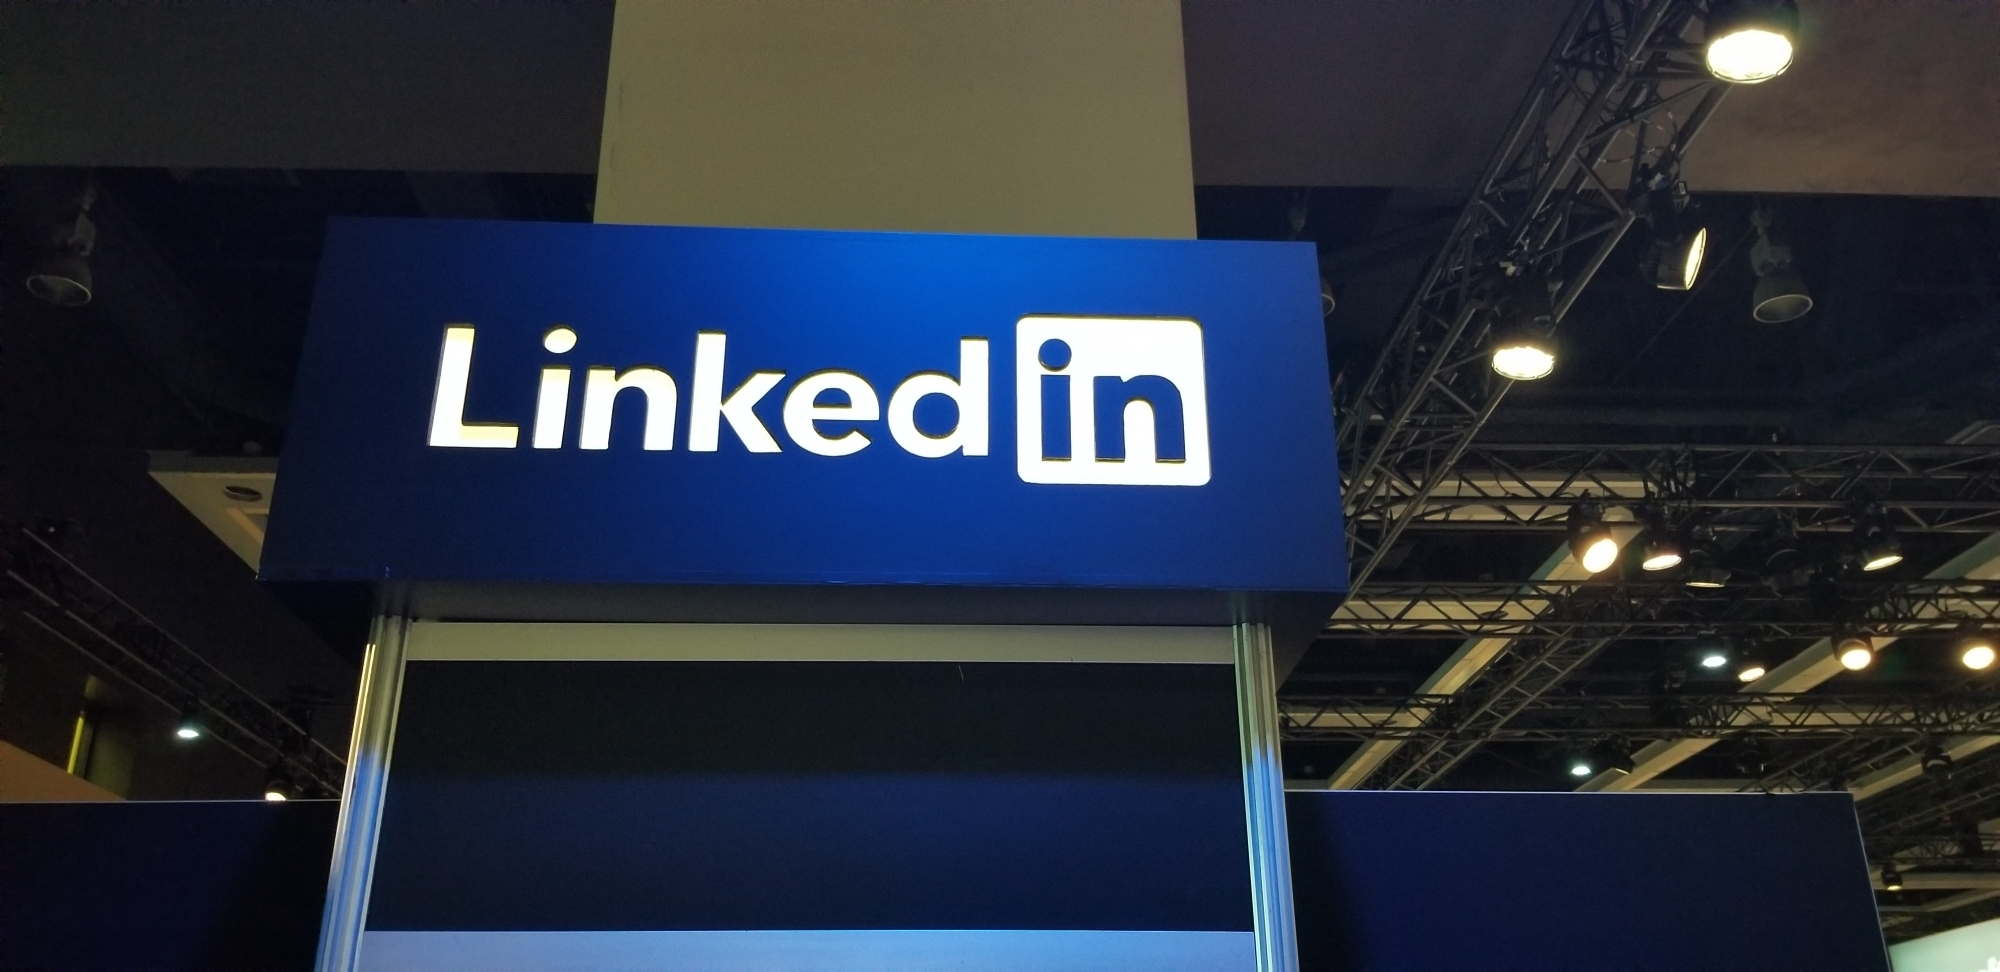 The leaked data up on sale includes LinkedIn IDs, full names, email addresses, phone numbers, genders, links to LinkedIn profiles, links to other social media profiles, professional titles and other work-related data